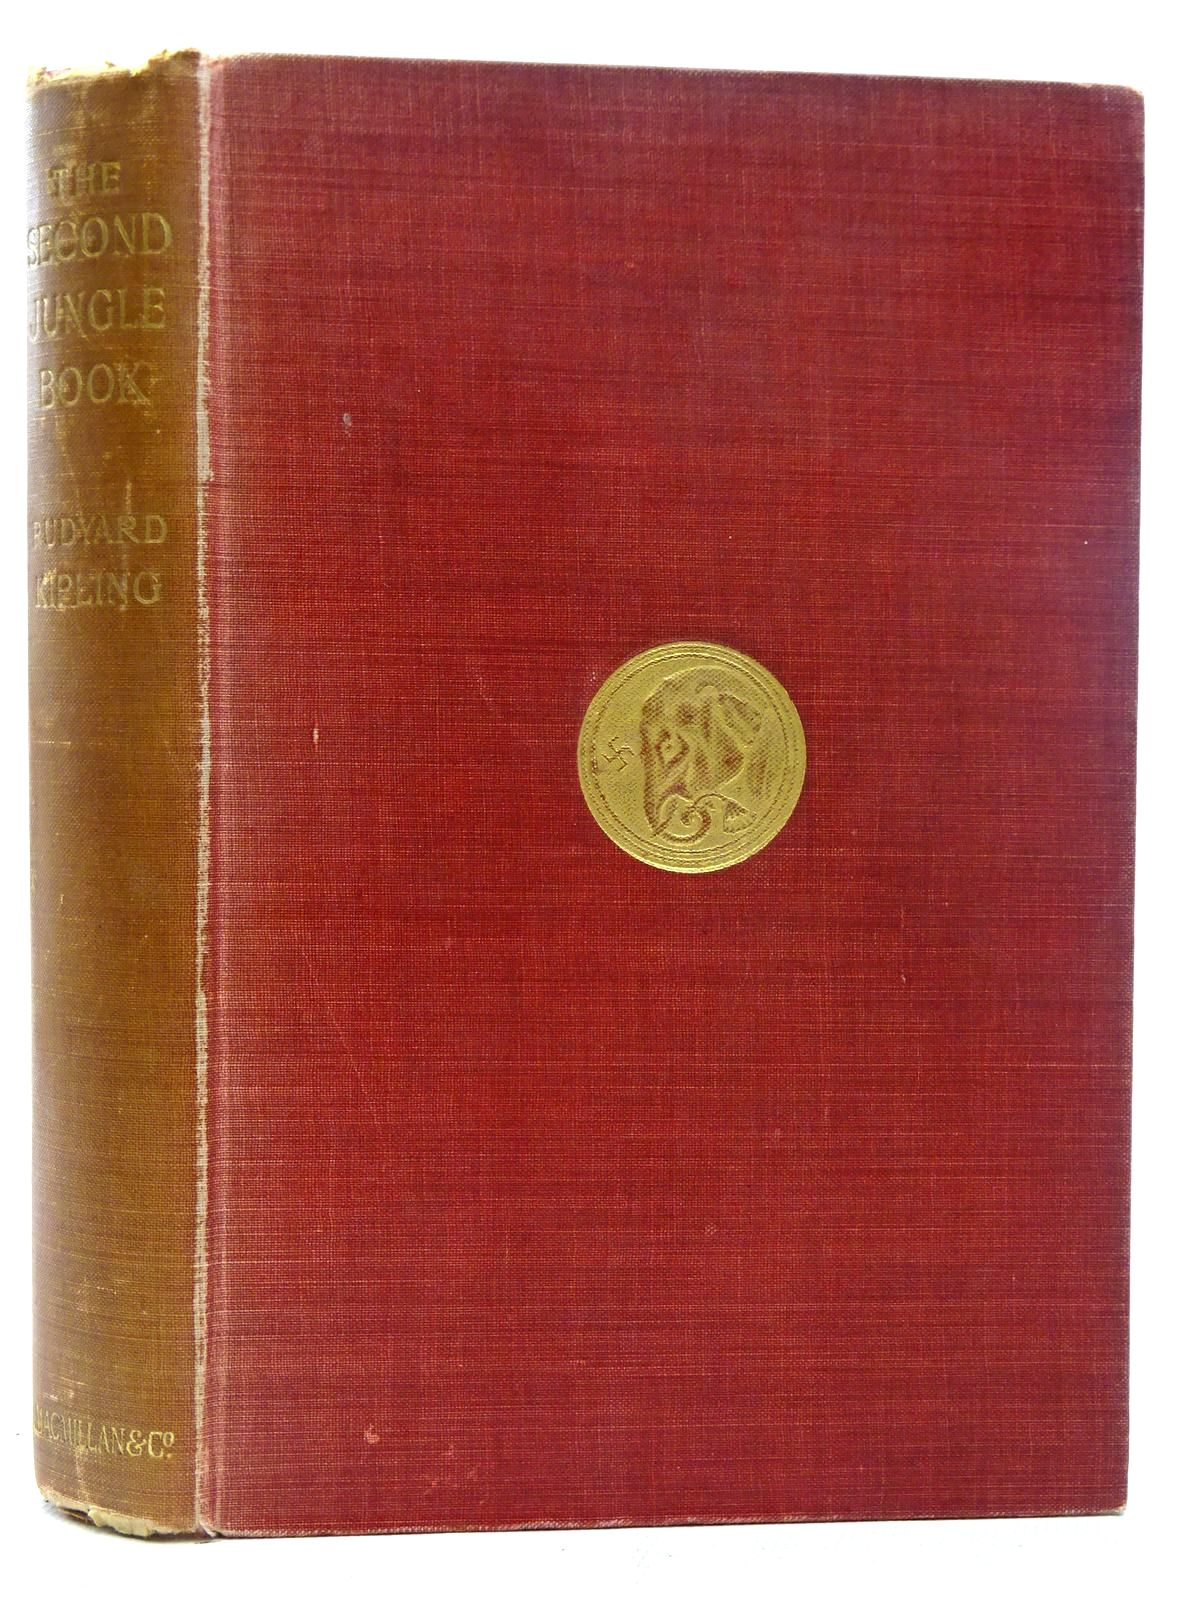 Photo of THE SECOND JUNGLE BOOK written by Kipling, Rudyard illustrated by Kipling, J. Lockwood published by Macmillan & Co. Ltd. (STOCK CODE: 2126304)  for sale by Stella & Rose's Books